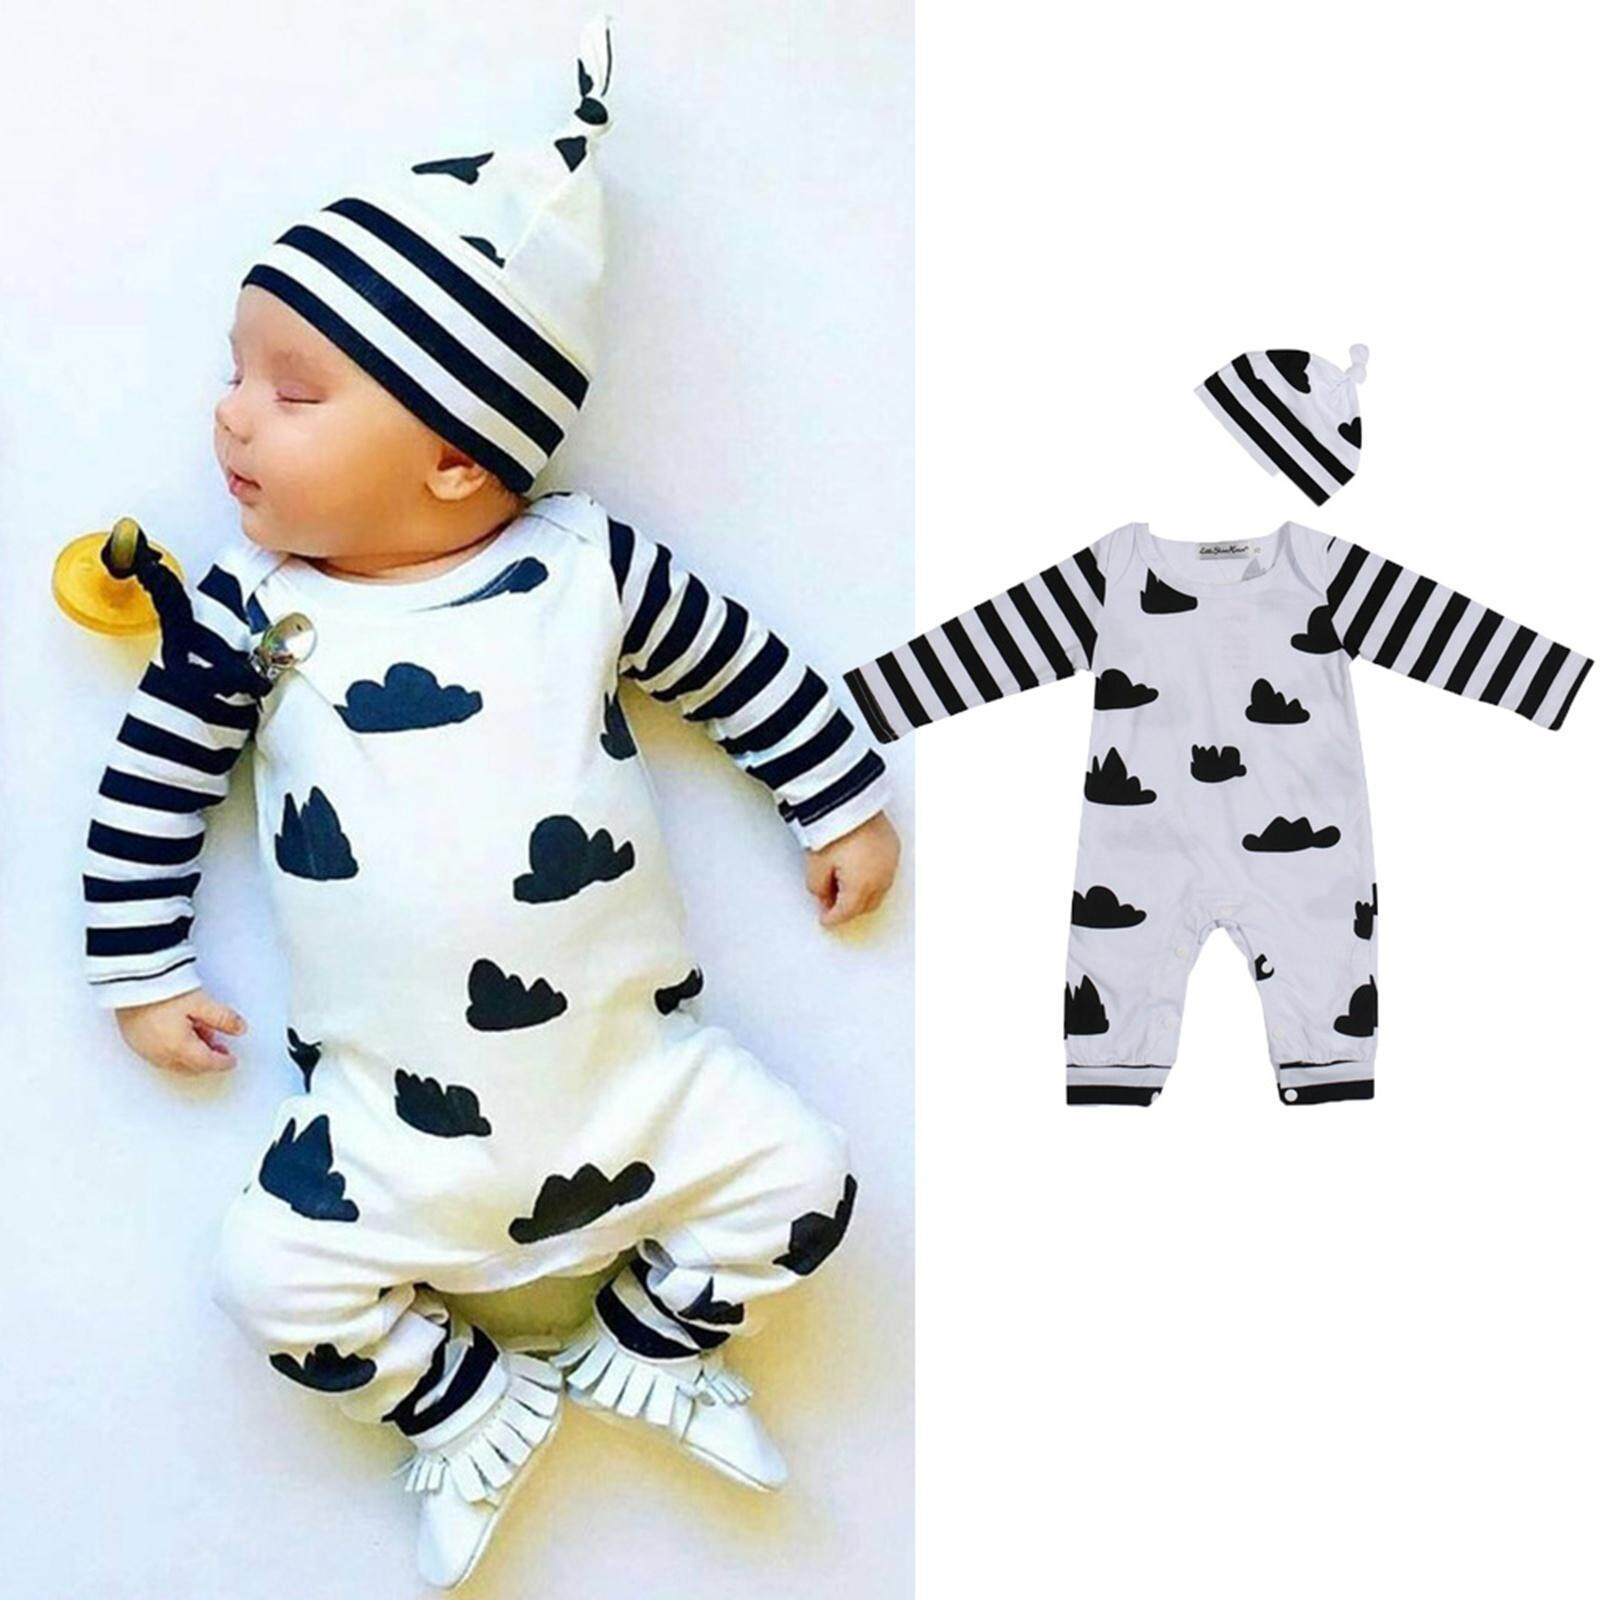 898b25c948f0 2Pcs Cute Soft Newborn Infant Baby Clothes Romper + Hat Outfits Sets Toddler  Kids Boys and Girls